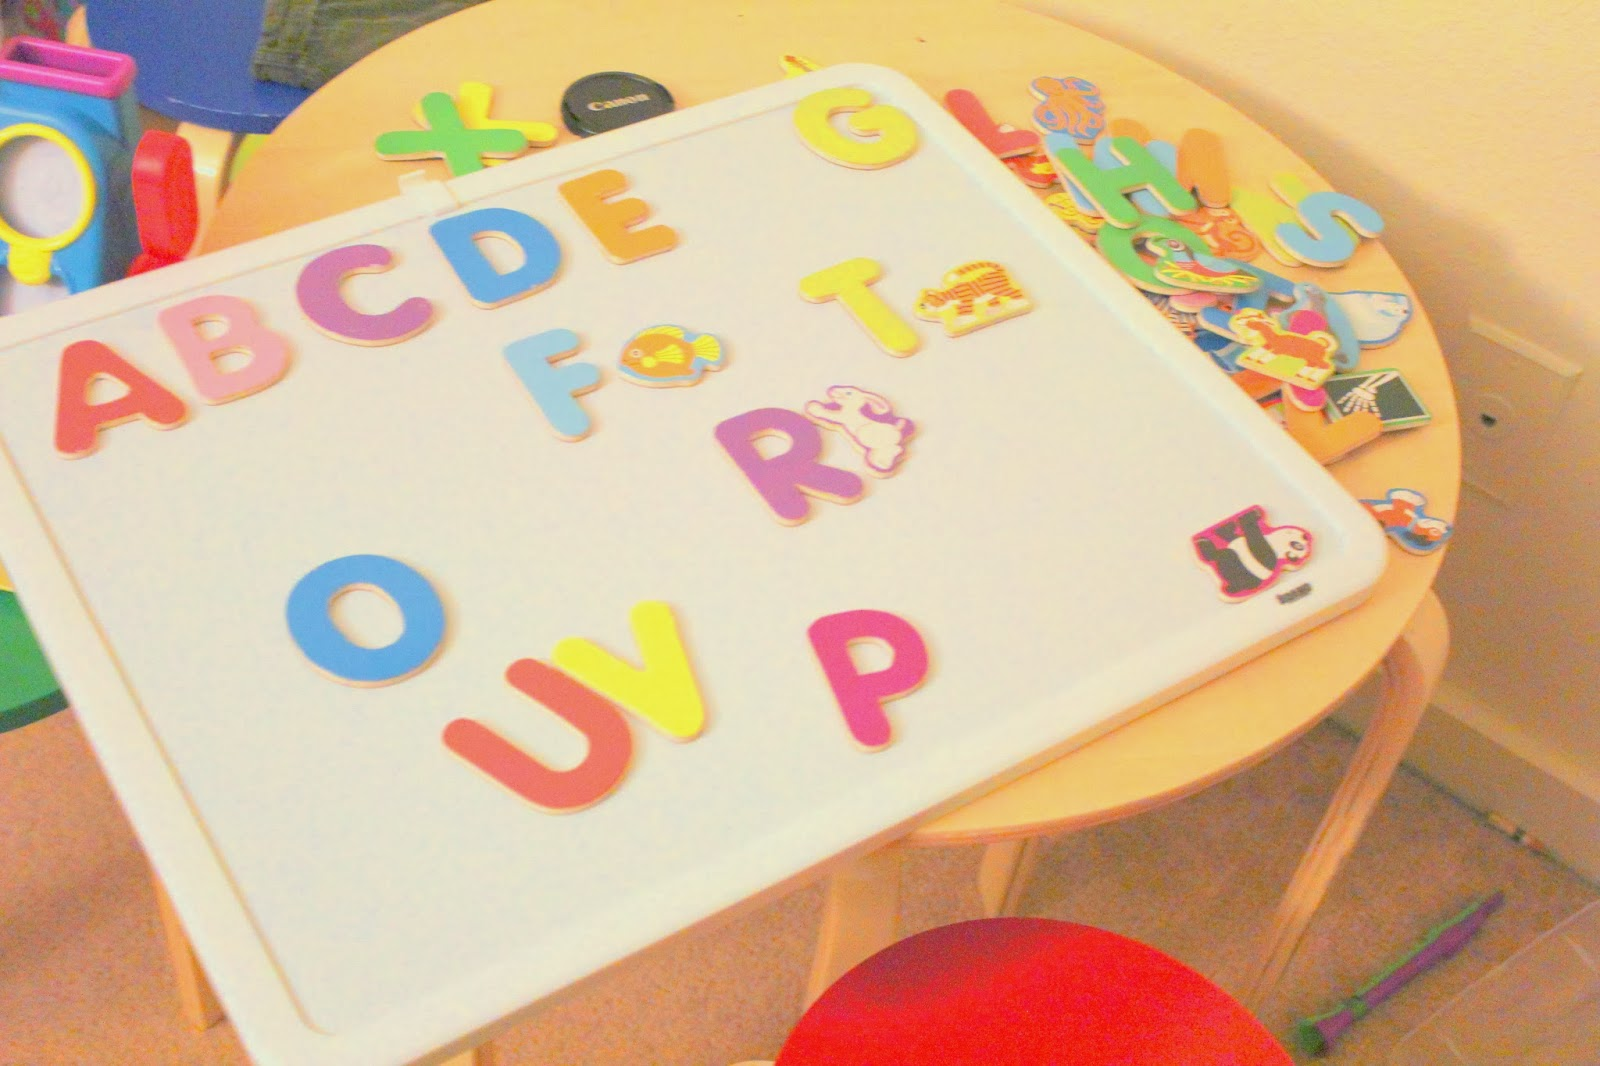 ABCs and alphabet learning for Toddlers using magnets